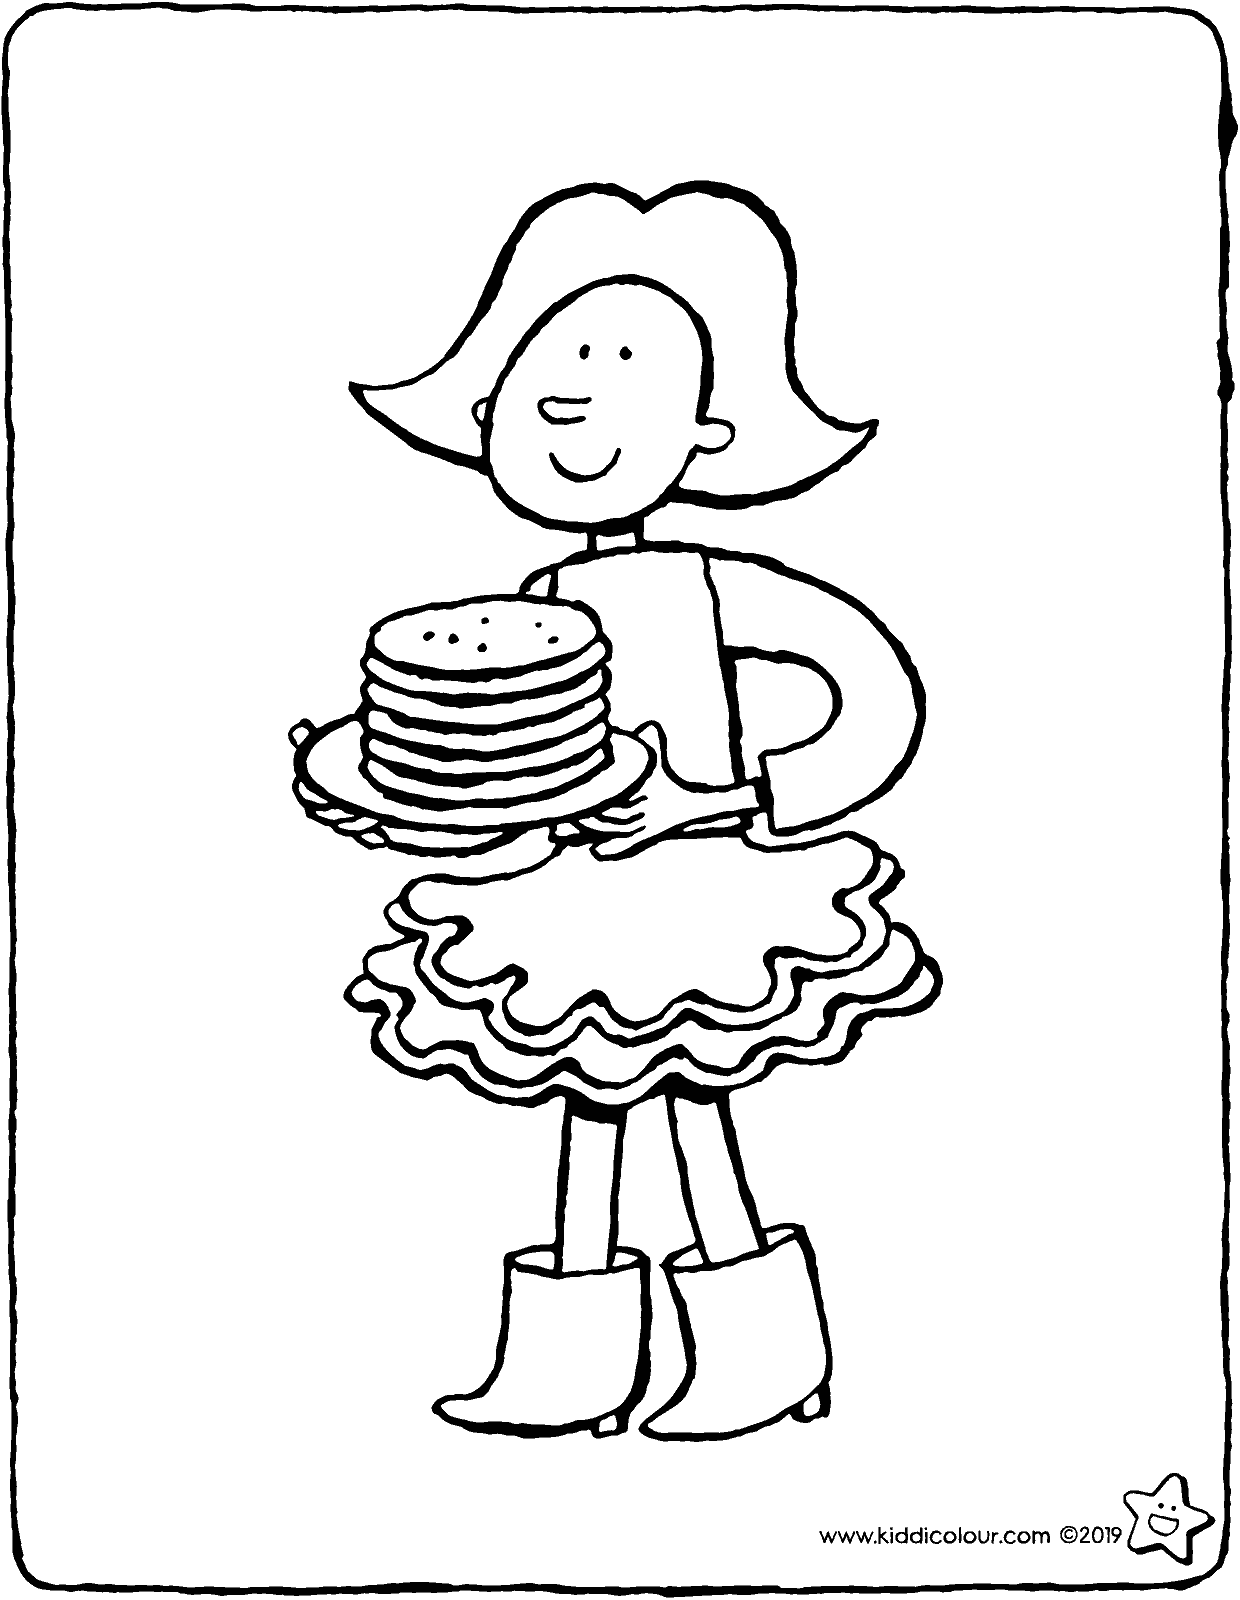 Emma with a plate of pancakes colouring page drawing picture 01V